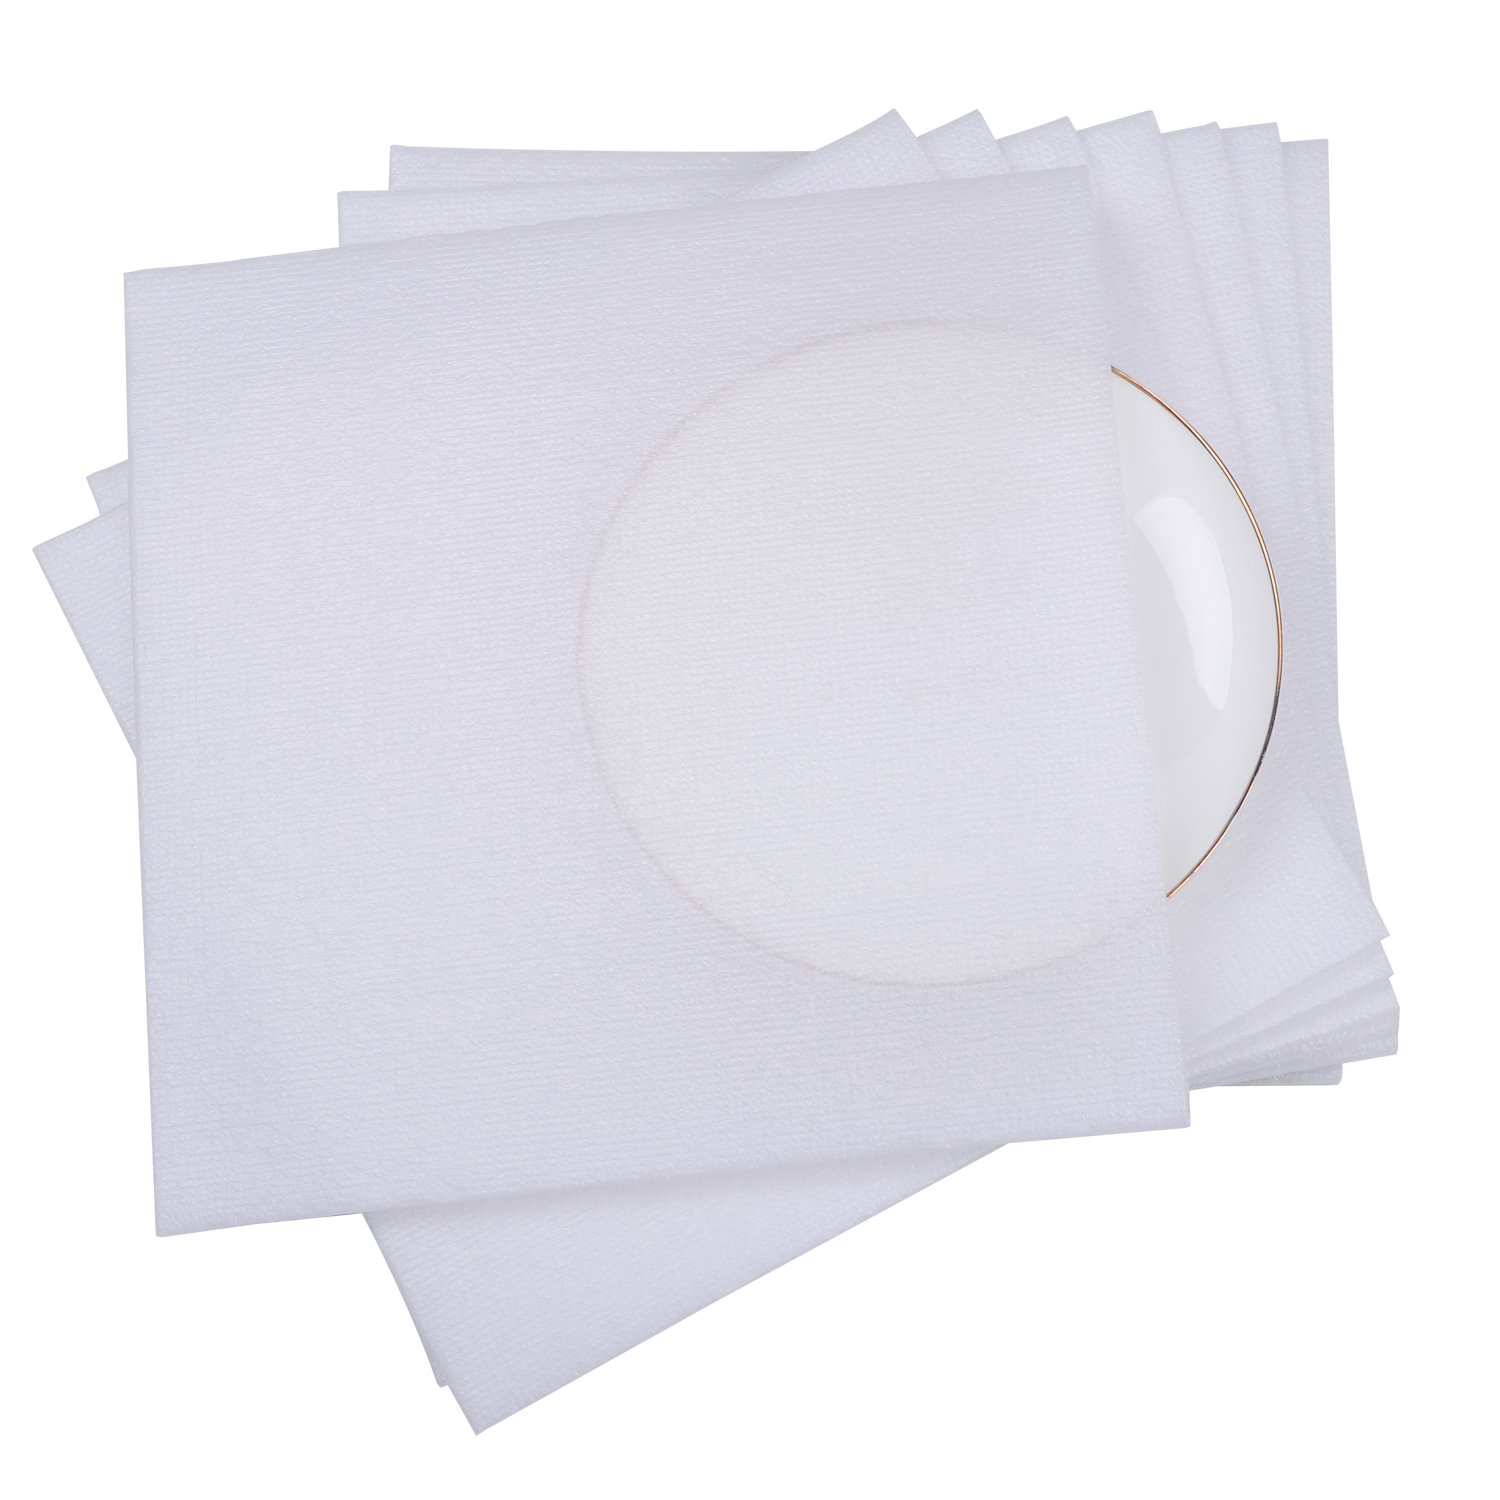 1/4'' Super Thick Foam Wrap Cup Pouches 12'' x 12'' (25 Count), Cushion Pouches to Protect Dishes, Glasses, Porcelain & Fragile Items, Packing Supplies for Moving